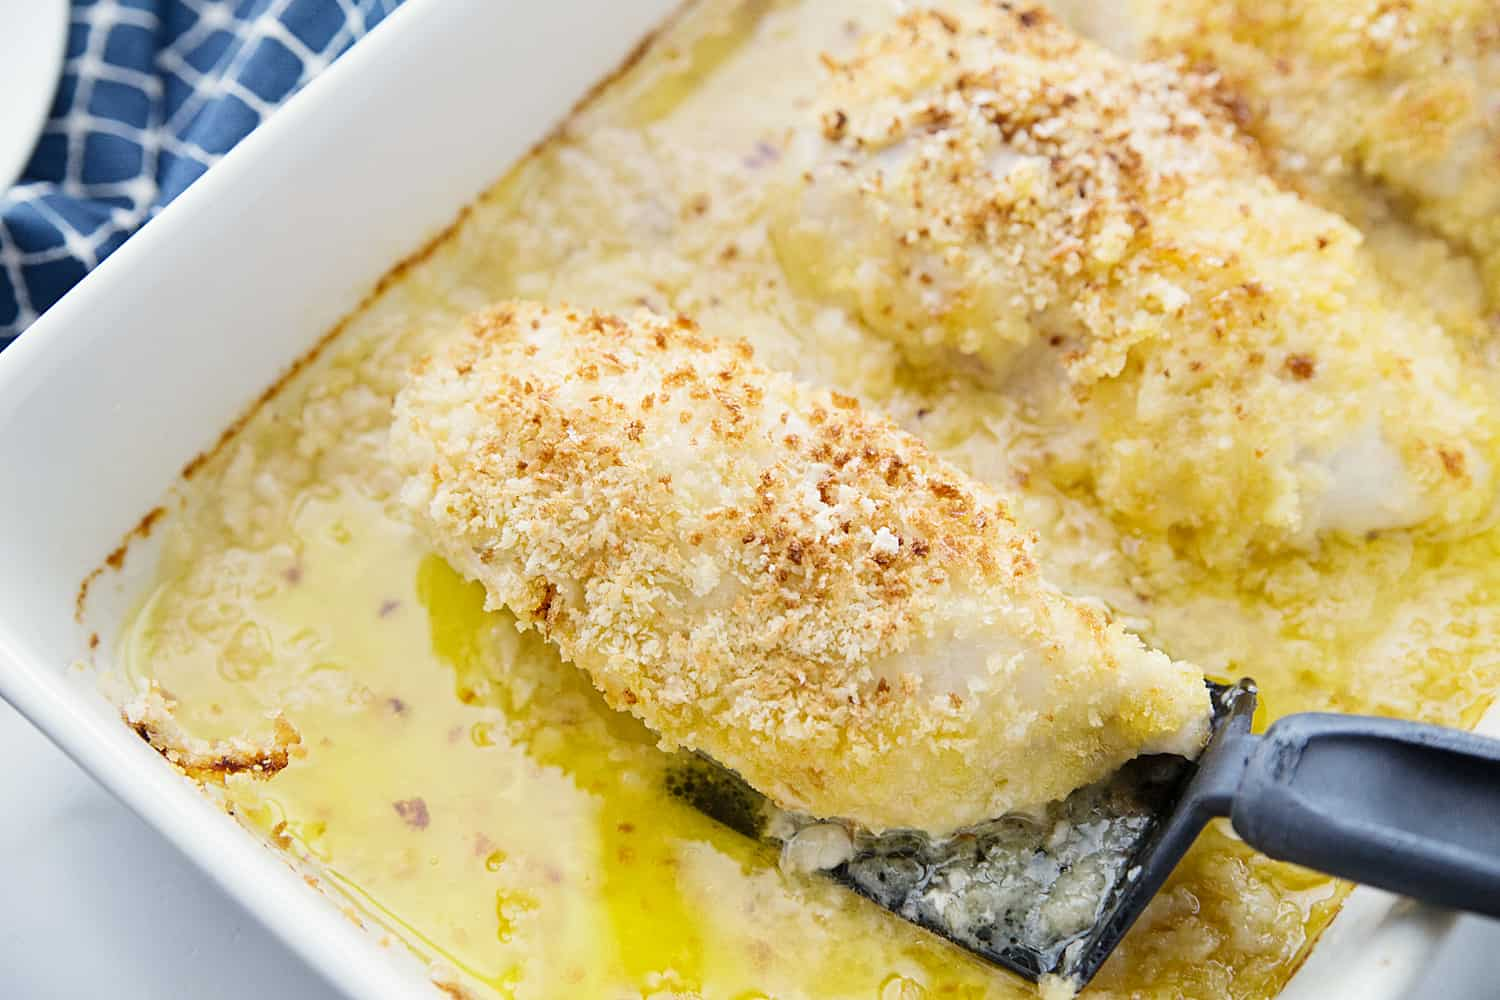 Easy Swiss Cheese Chicken - This Swiss cheese chicken recipe is an easy weeknight meal! Chicken breasts are covered in a creamy sauce and cheese and topped with crispy bread crumbs. #chicken #swisscheese #chickenbake #chickencasserole #halfscratched #chickenrecipe #swisschicken #maindish #easyrecipe #savory